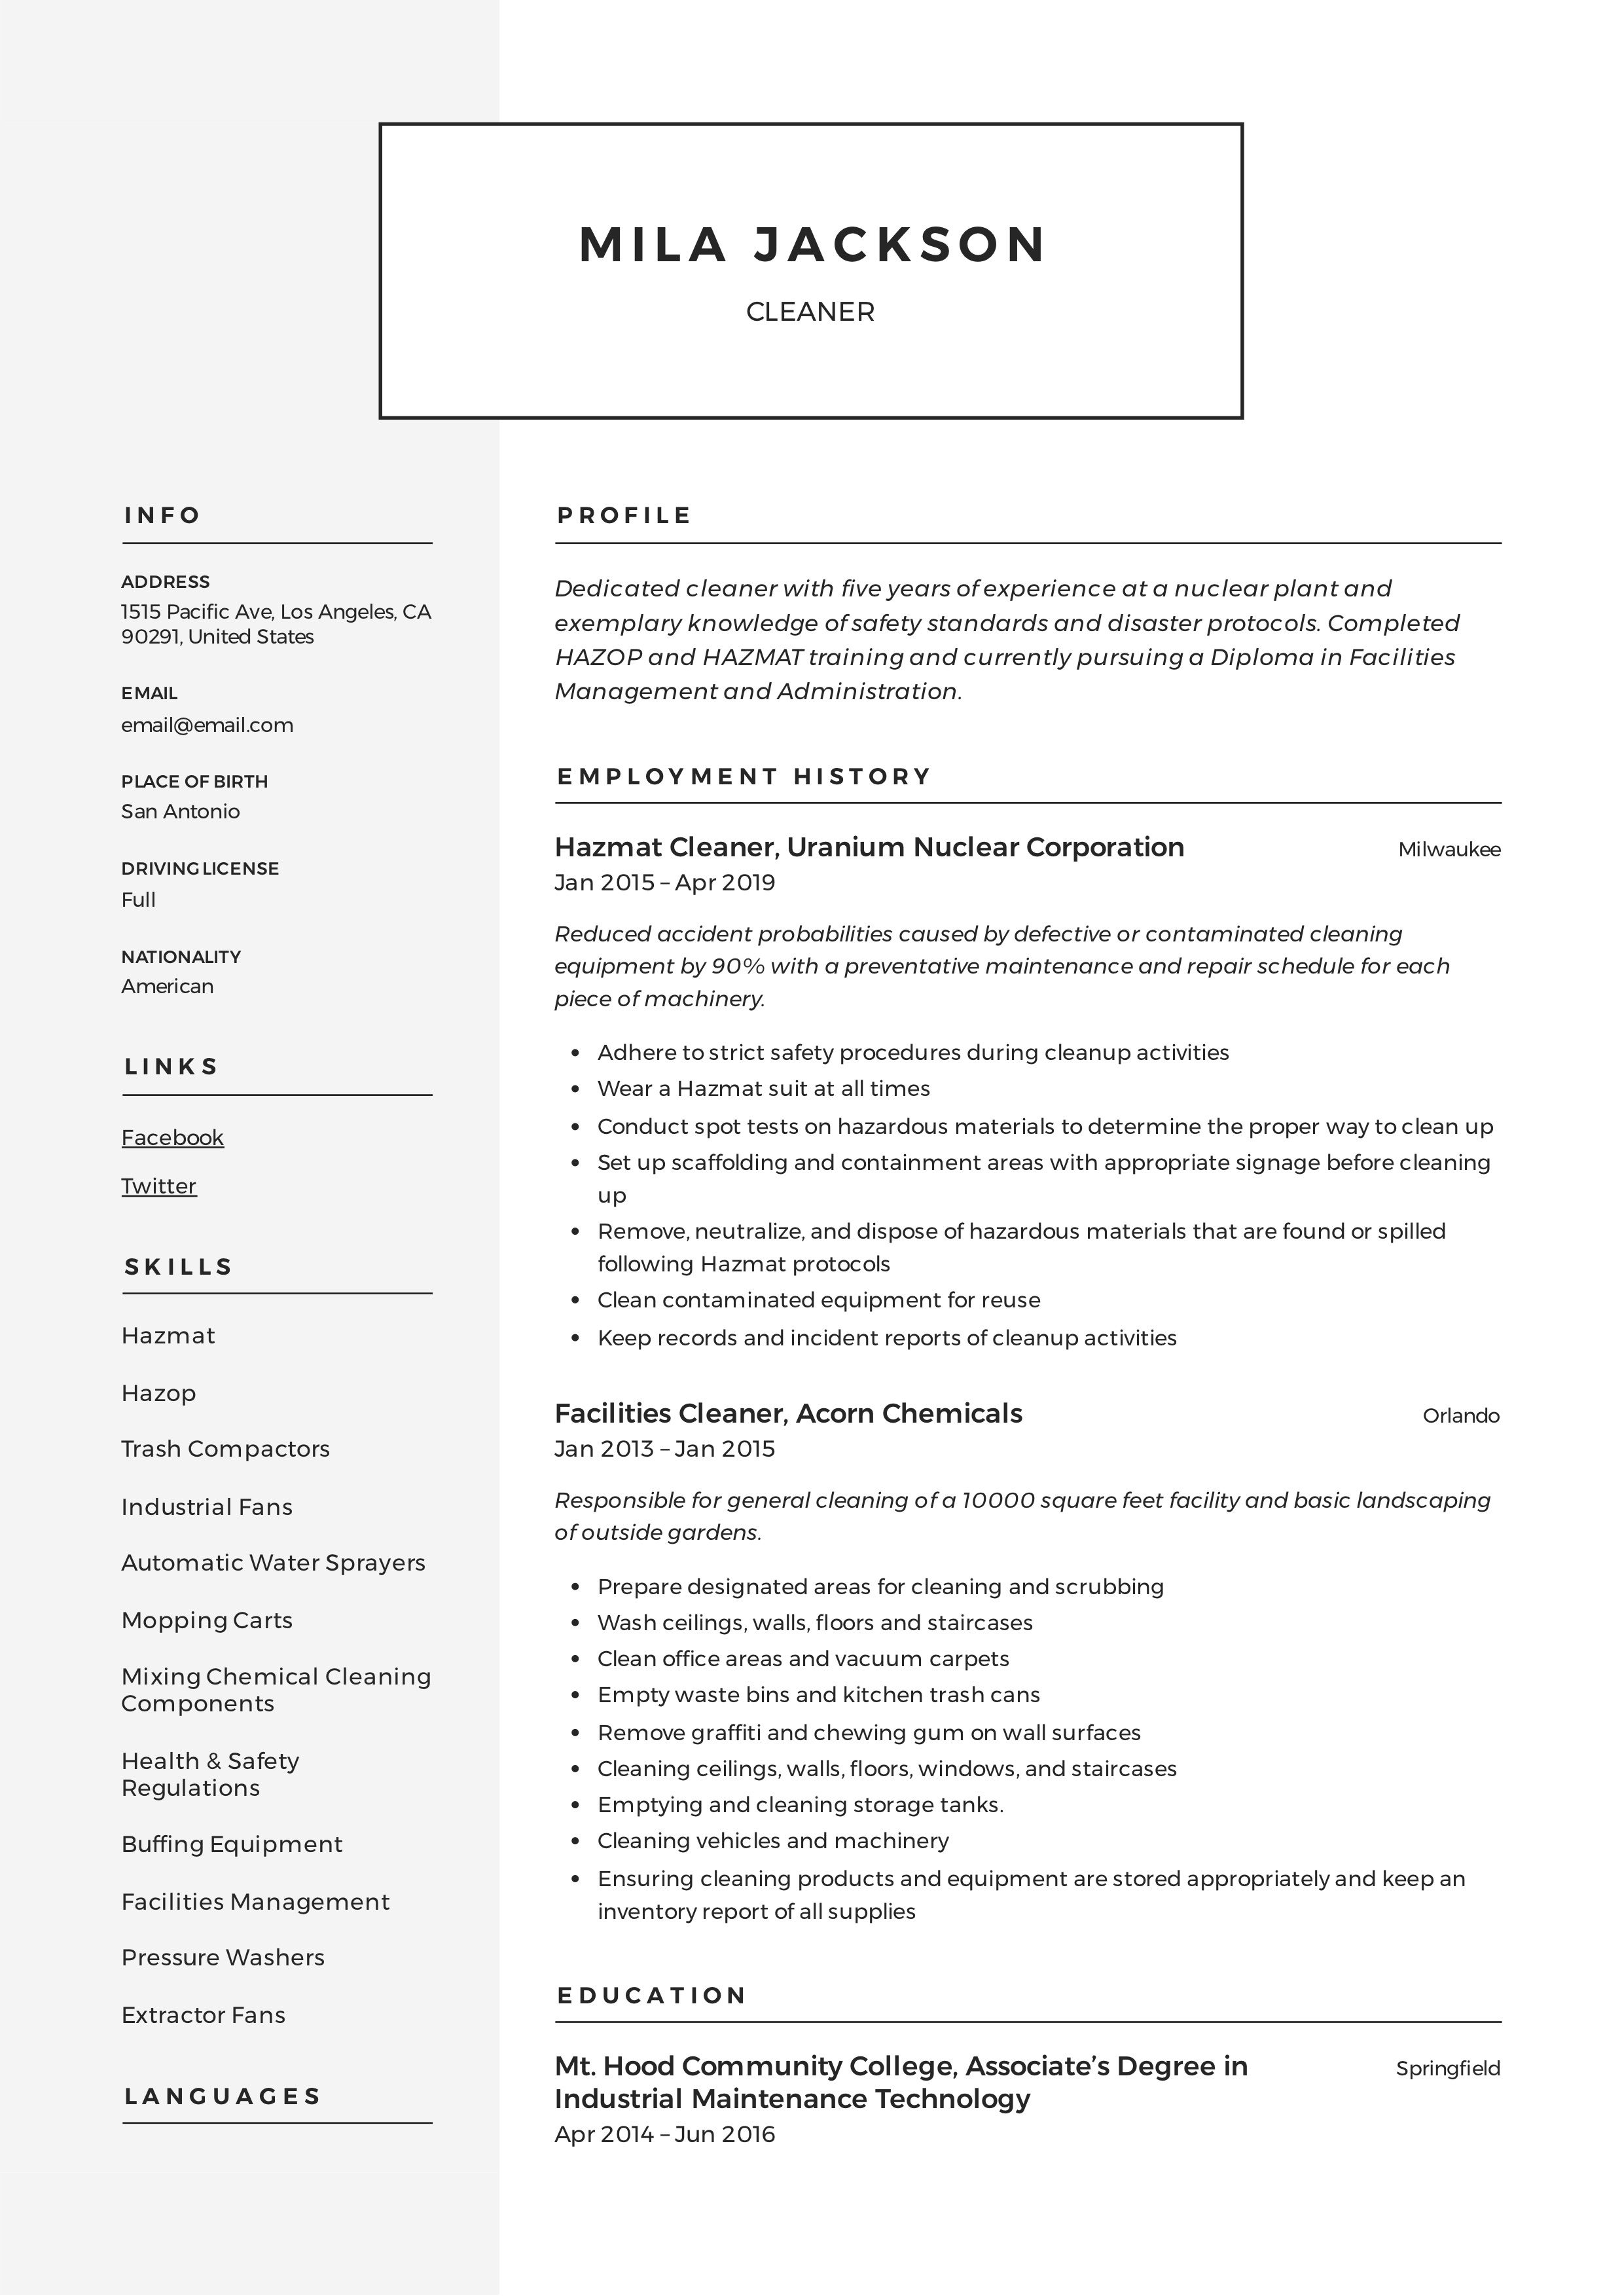 Cleaner resume template in 2020 resume writing